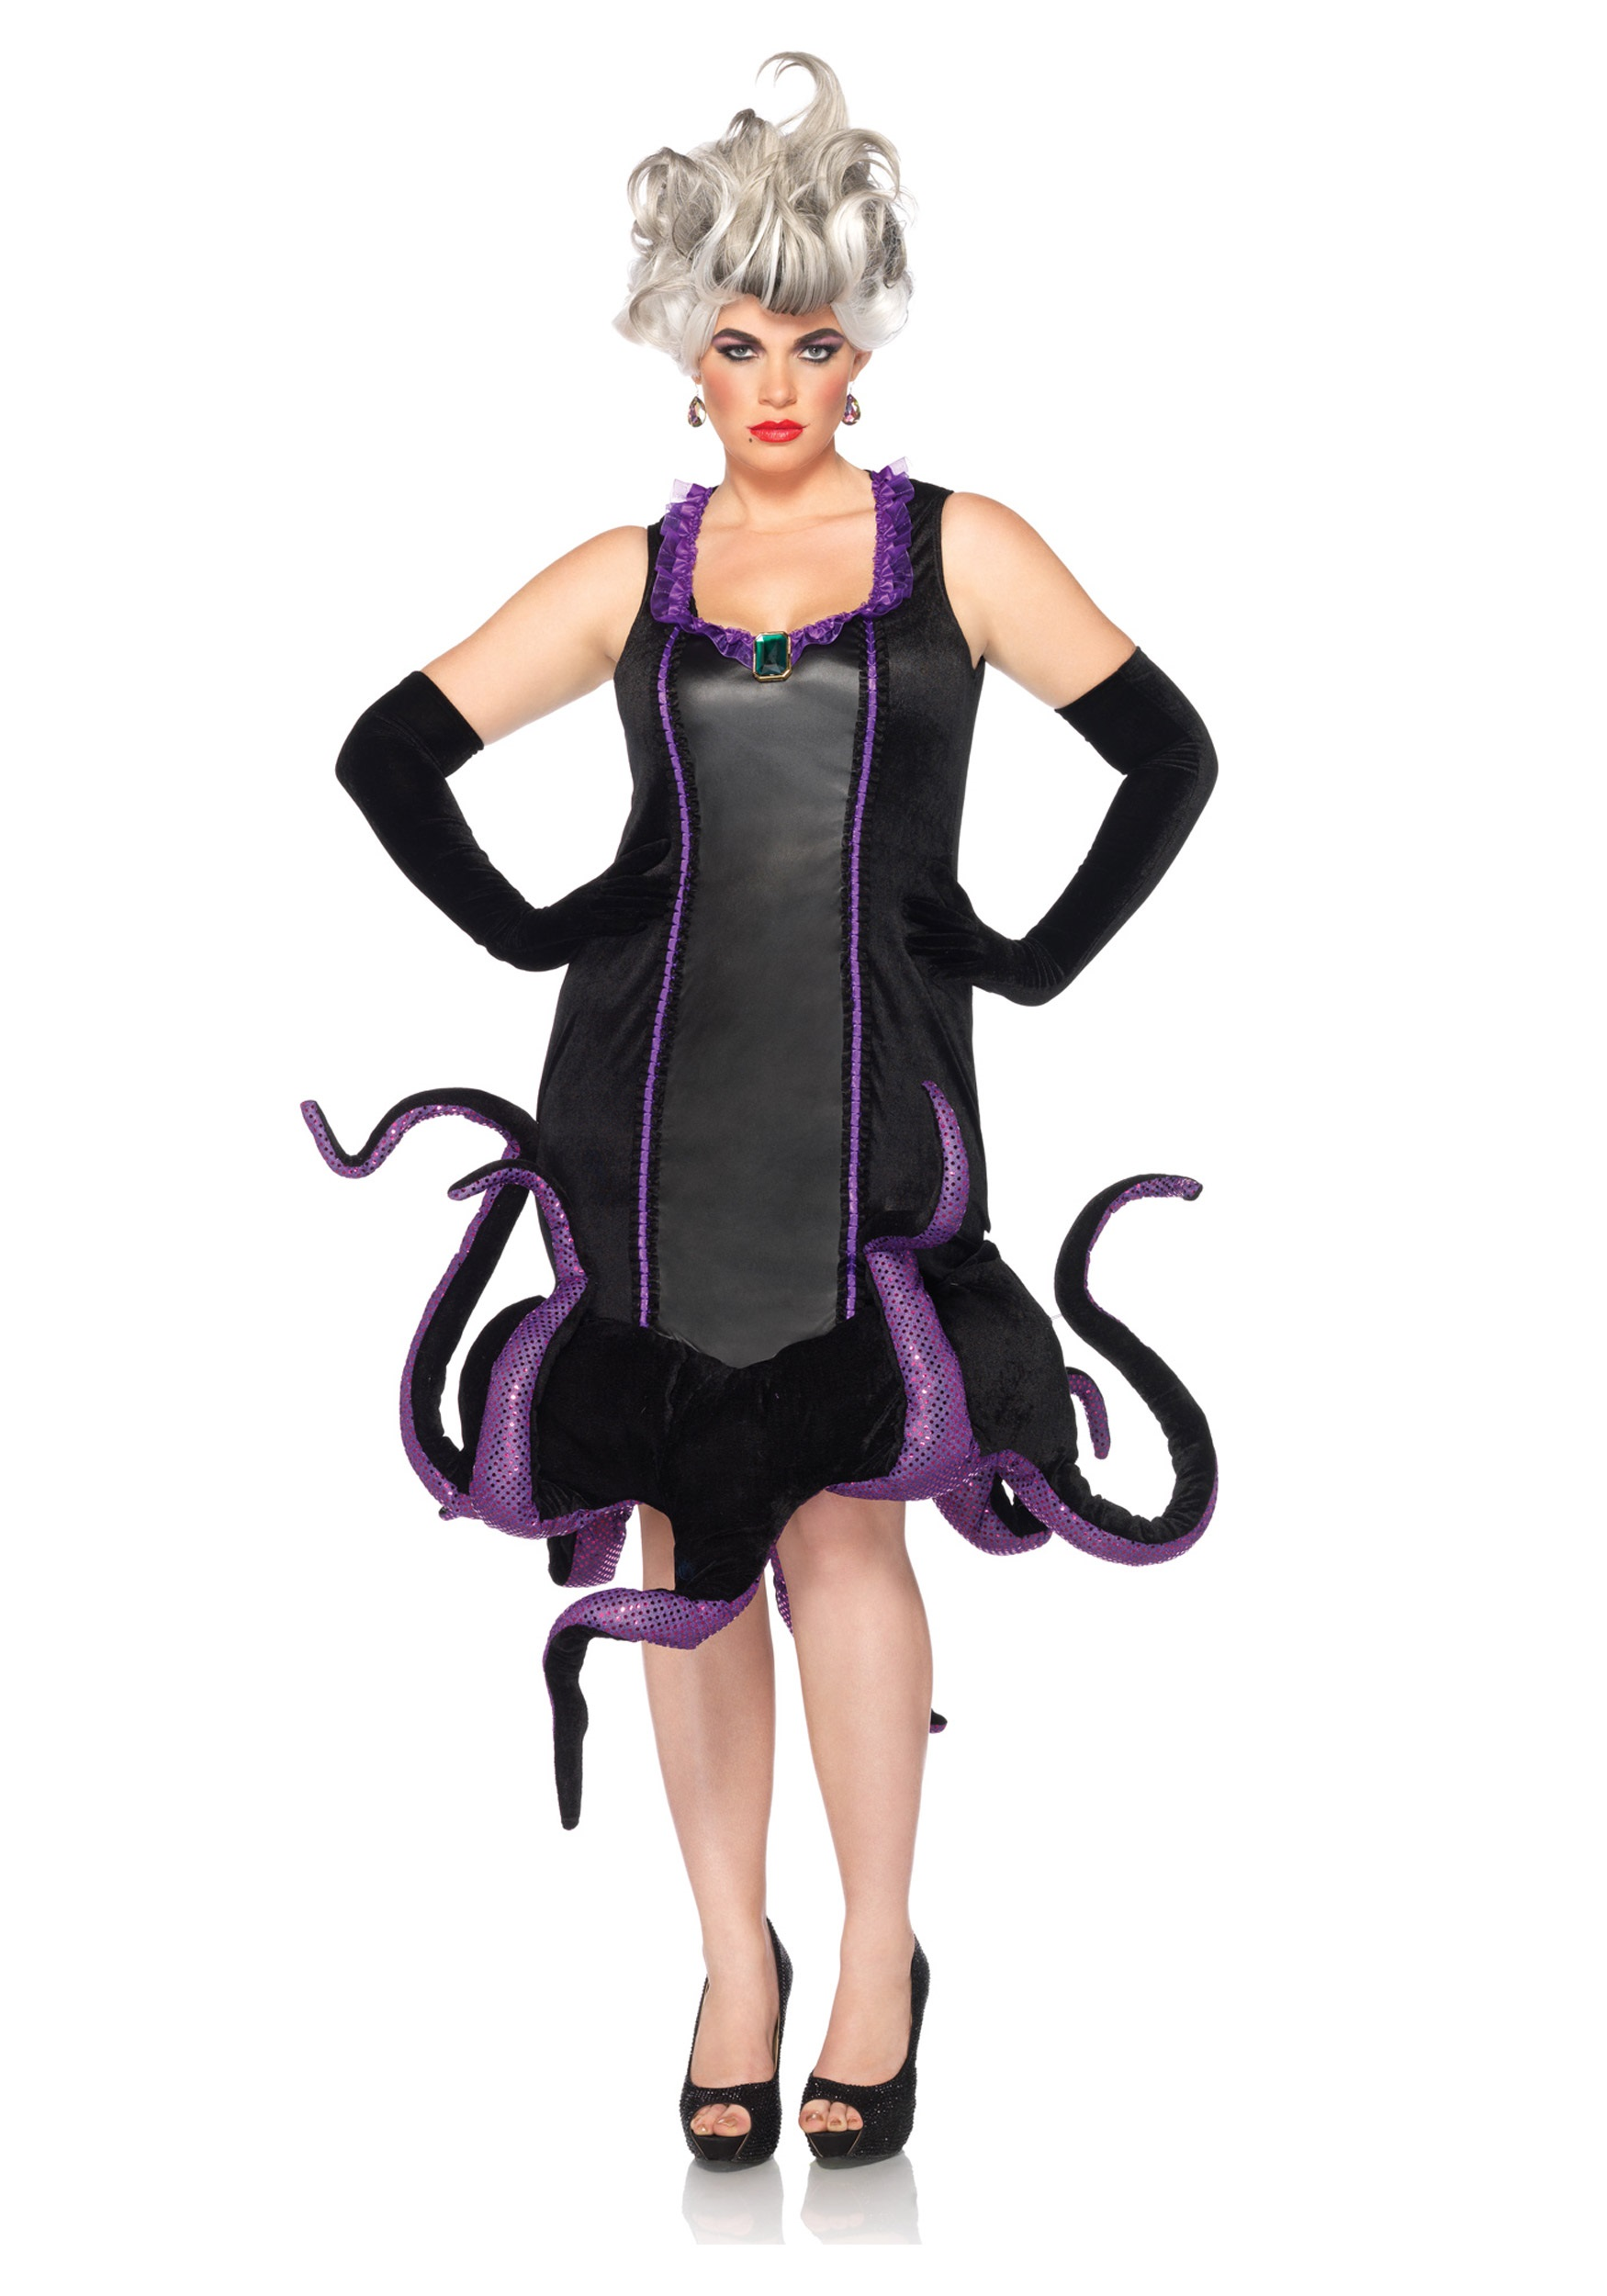 Womens Disney Plus Ursula Costume  sc 1 st  Halloween Costumes & Womens Disney Plus Ursula Costume - Halloween Costumes